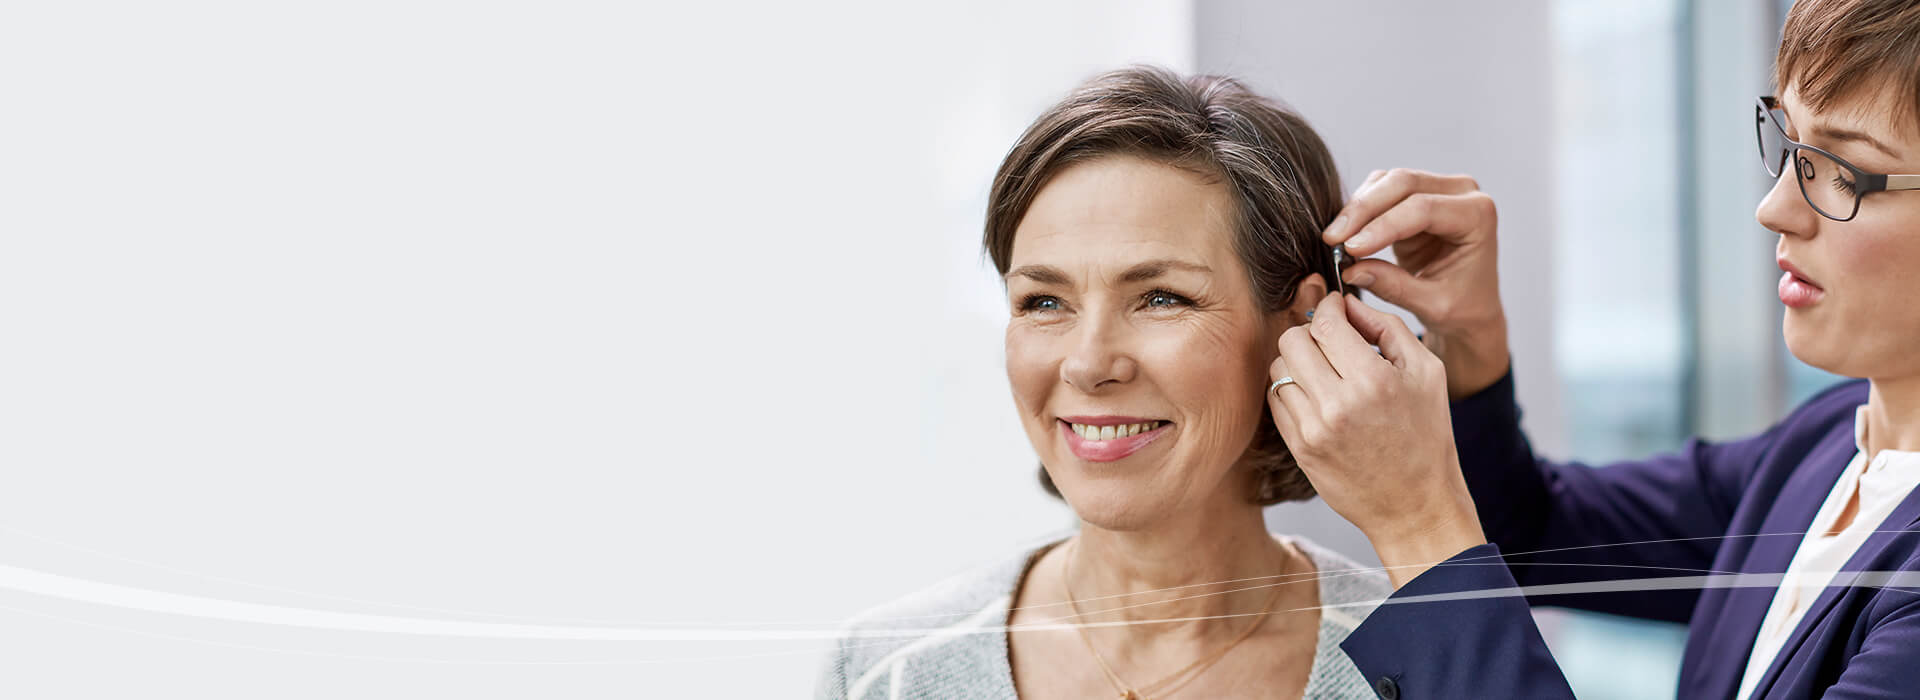 Get_personal_hearing_aid_fittings_1920x700_v1